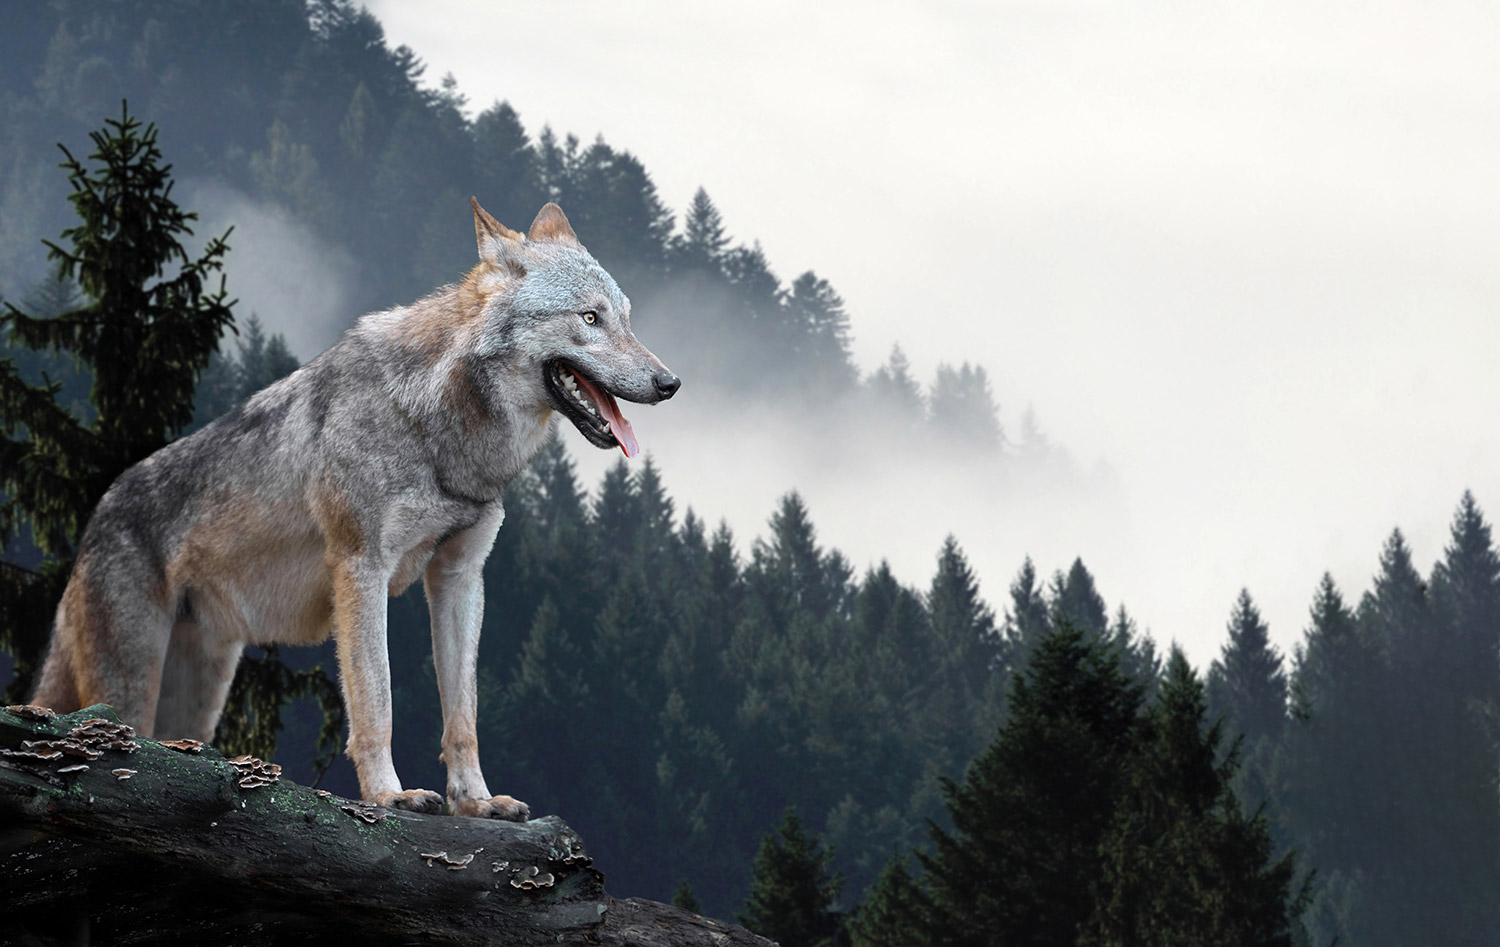 Wolf overlooking forest with mist